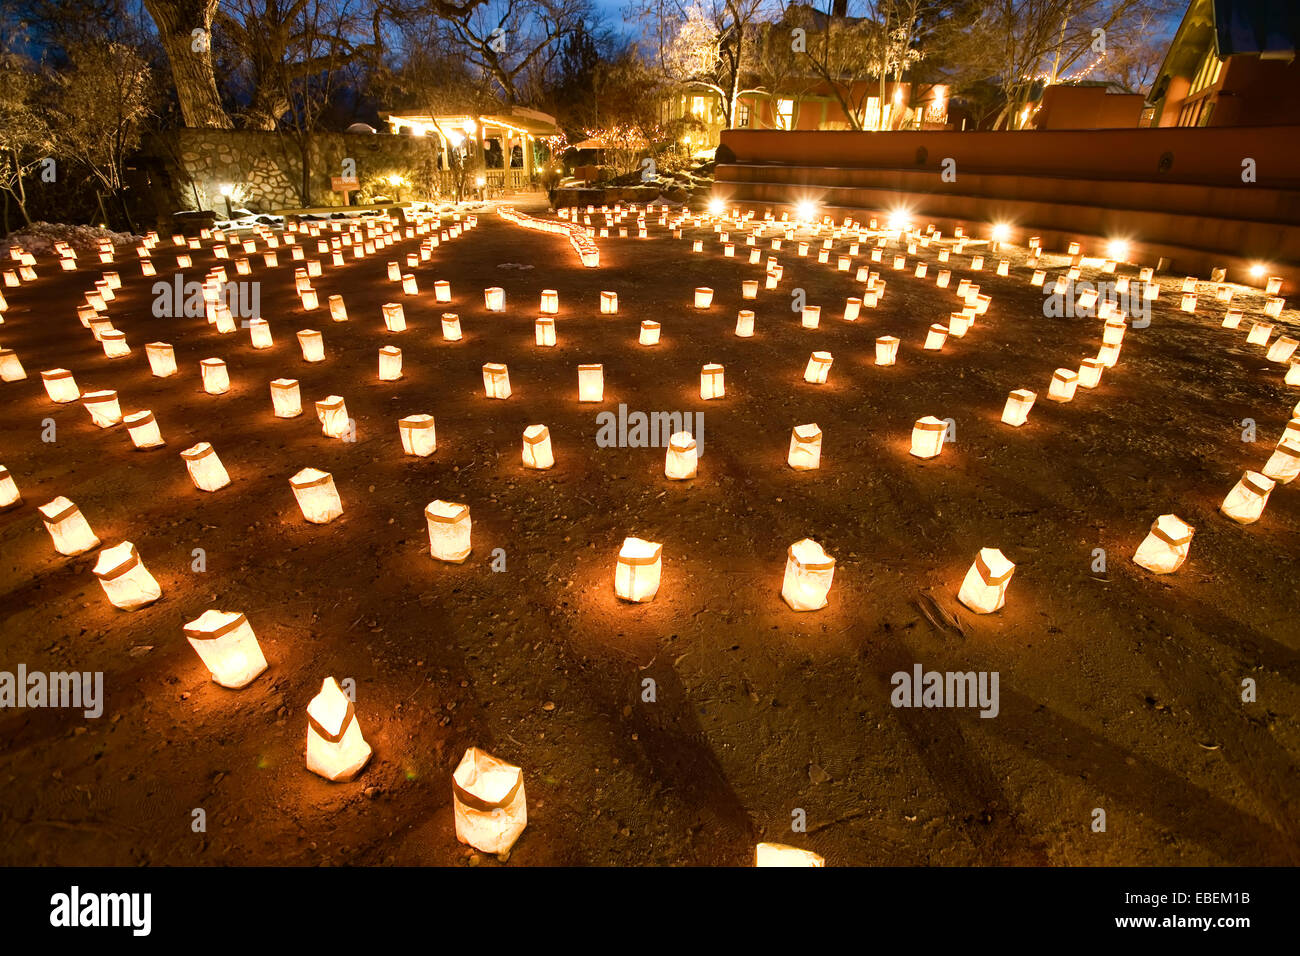 Farolitos Labyrinth, Sunrise Springs Resort, Santa Fe, New Mexico USA - Stock Image